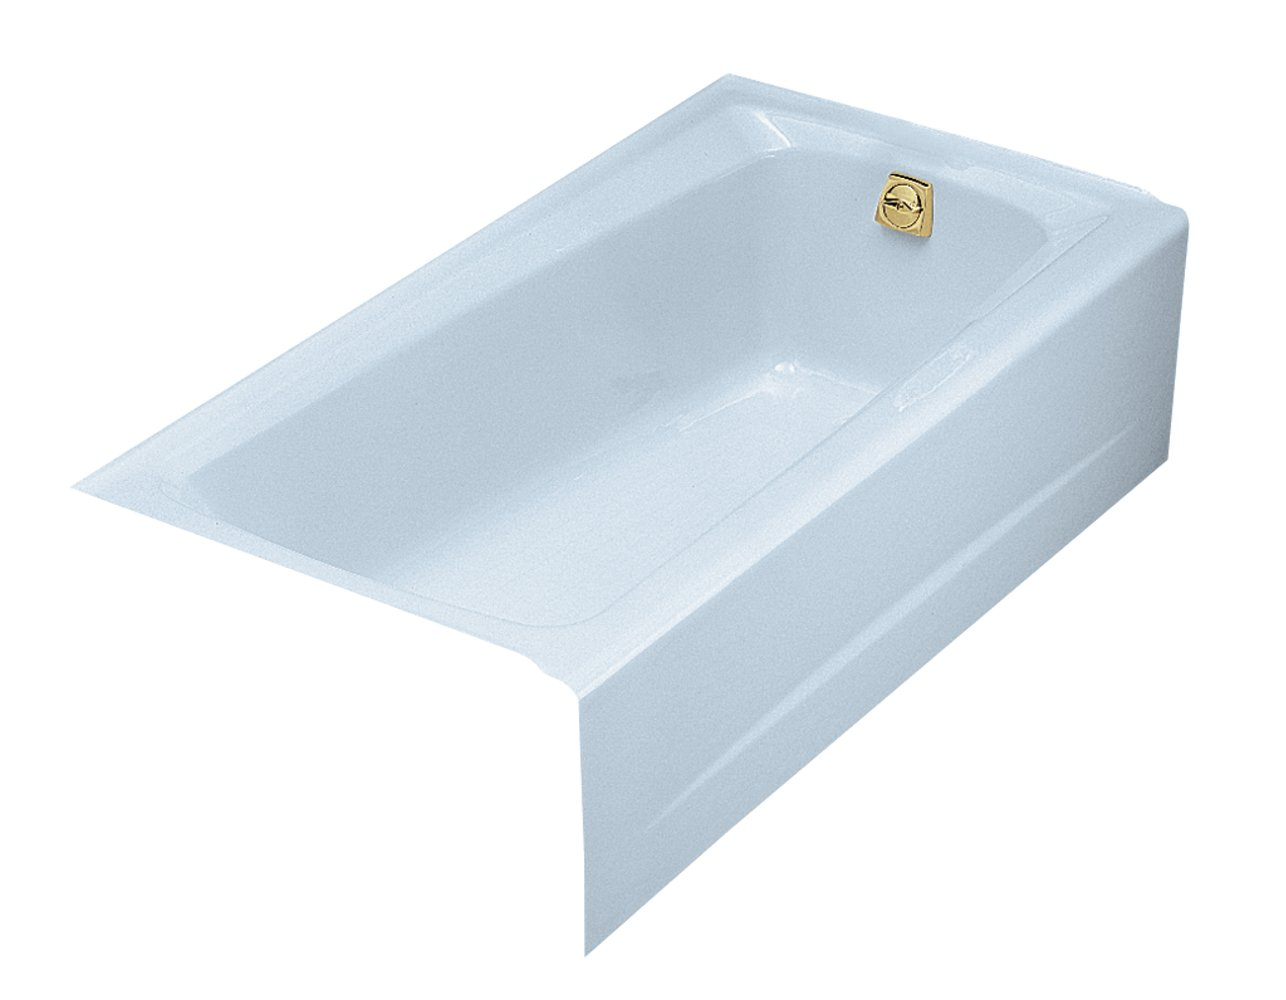 Kohler K-506-6 Mendota 5Ft Bath with Right-Hand Drain, Skylight ...